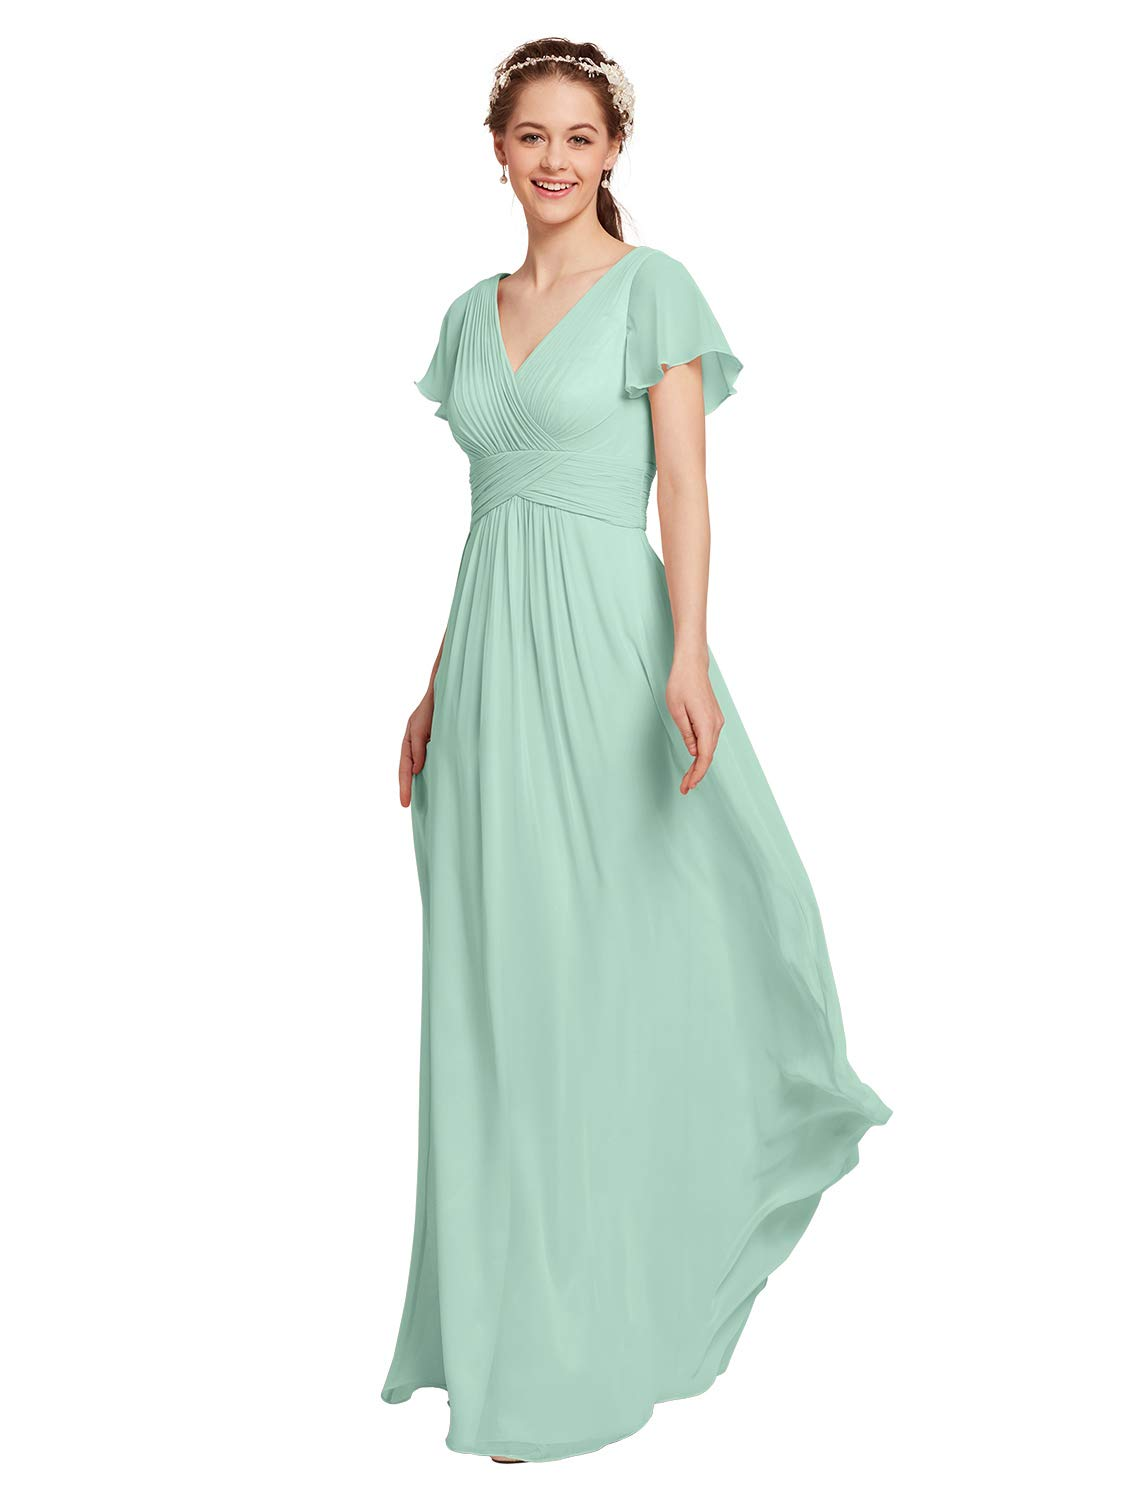 AW Chiffon Bridesmaid Dress with Sleeves V-Neck Wedding Maxi Evening Party  Dress Long Plus Size Prom Gowns, Mint Green, US24